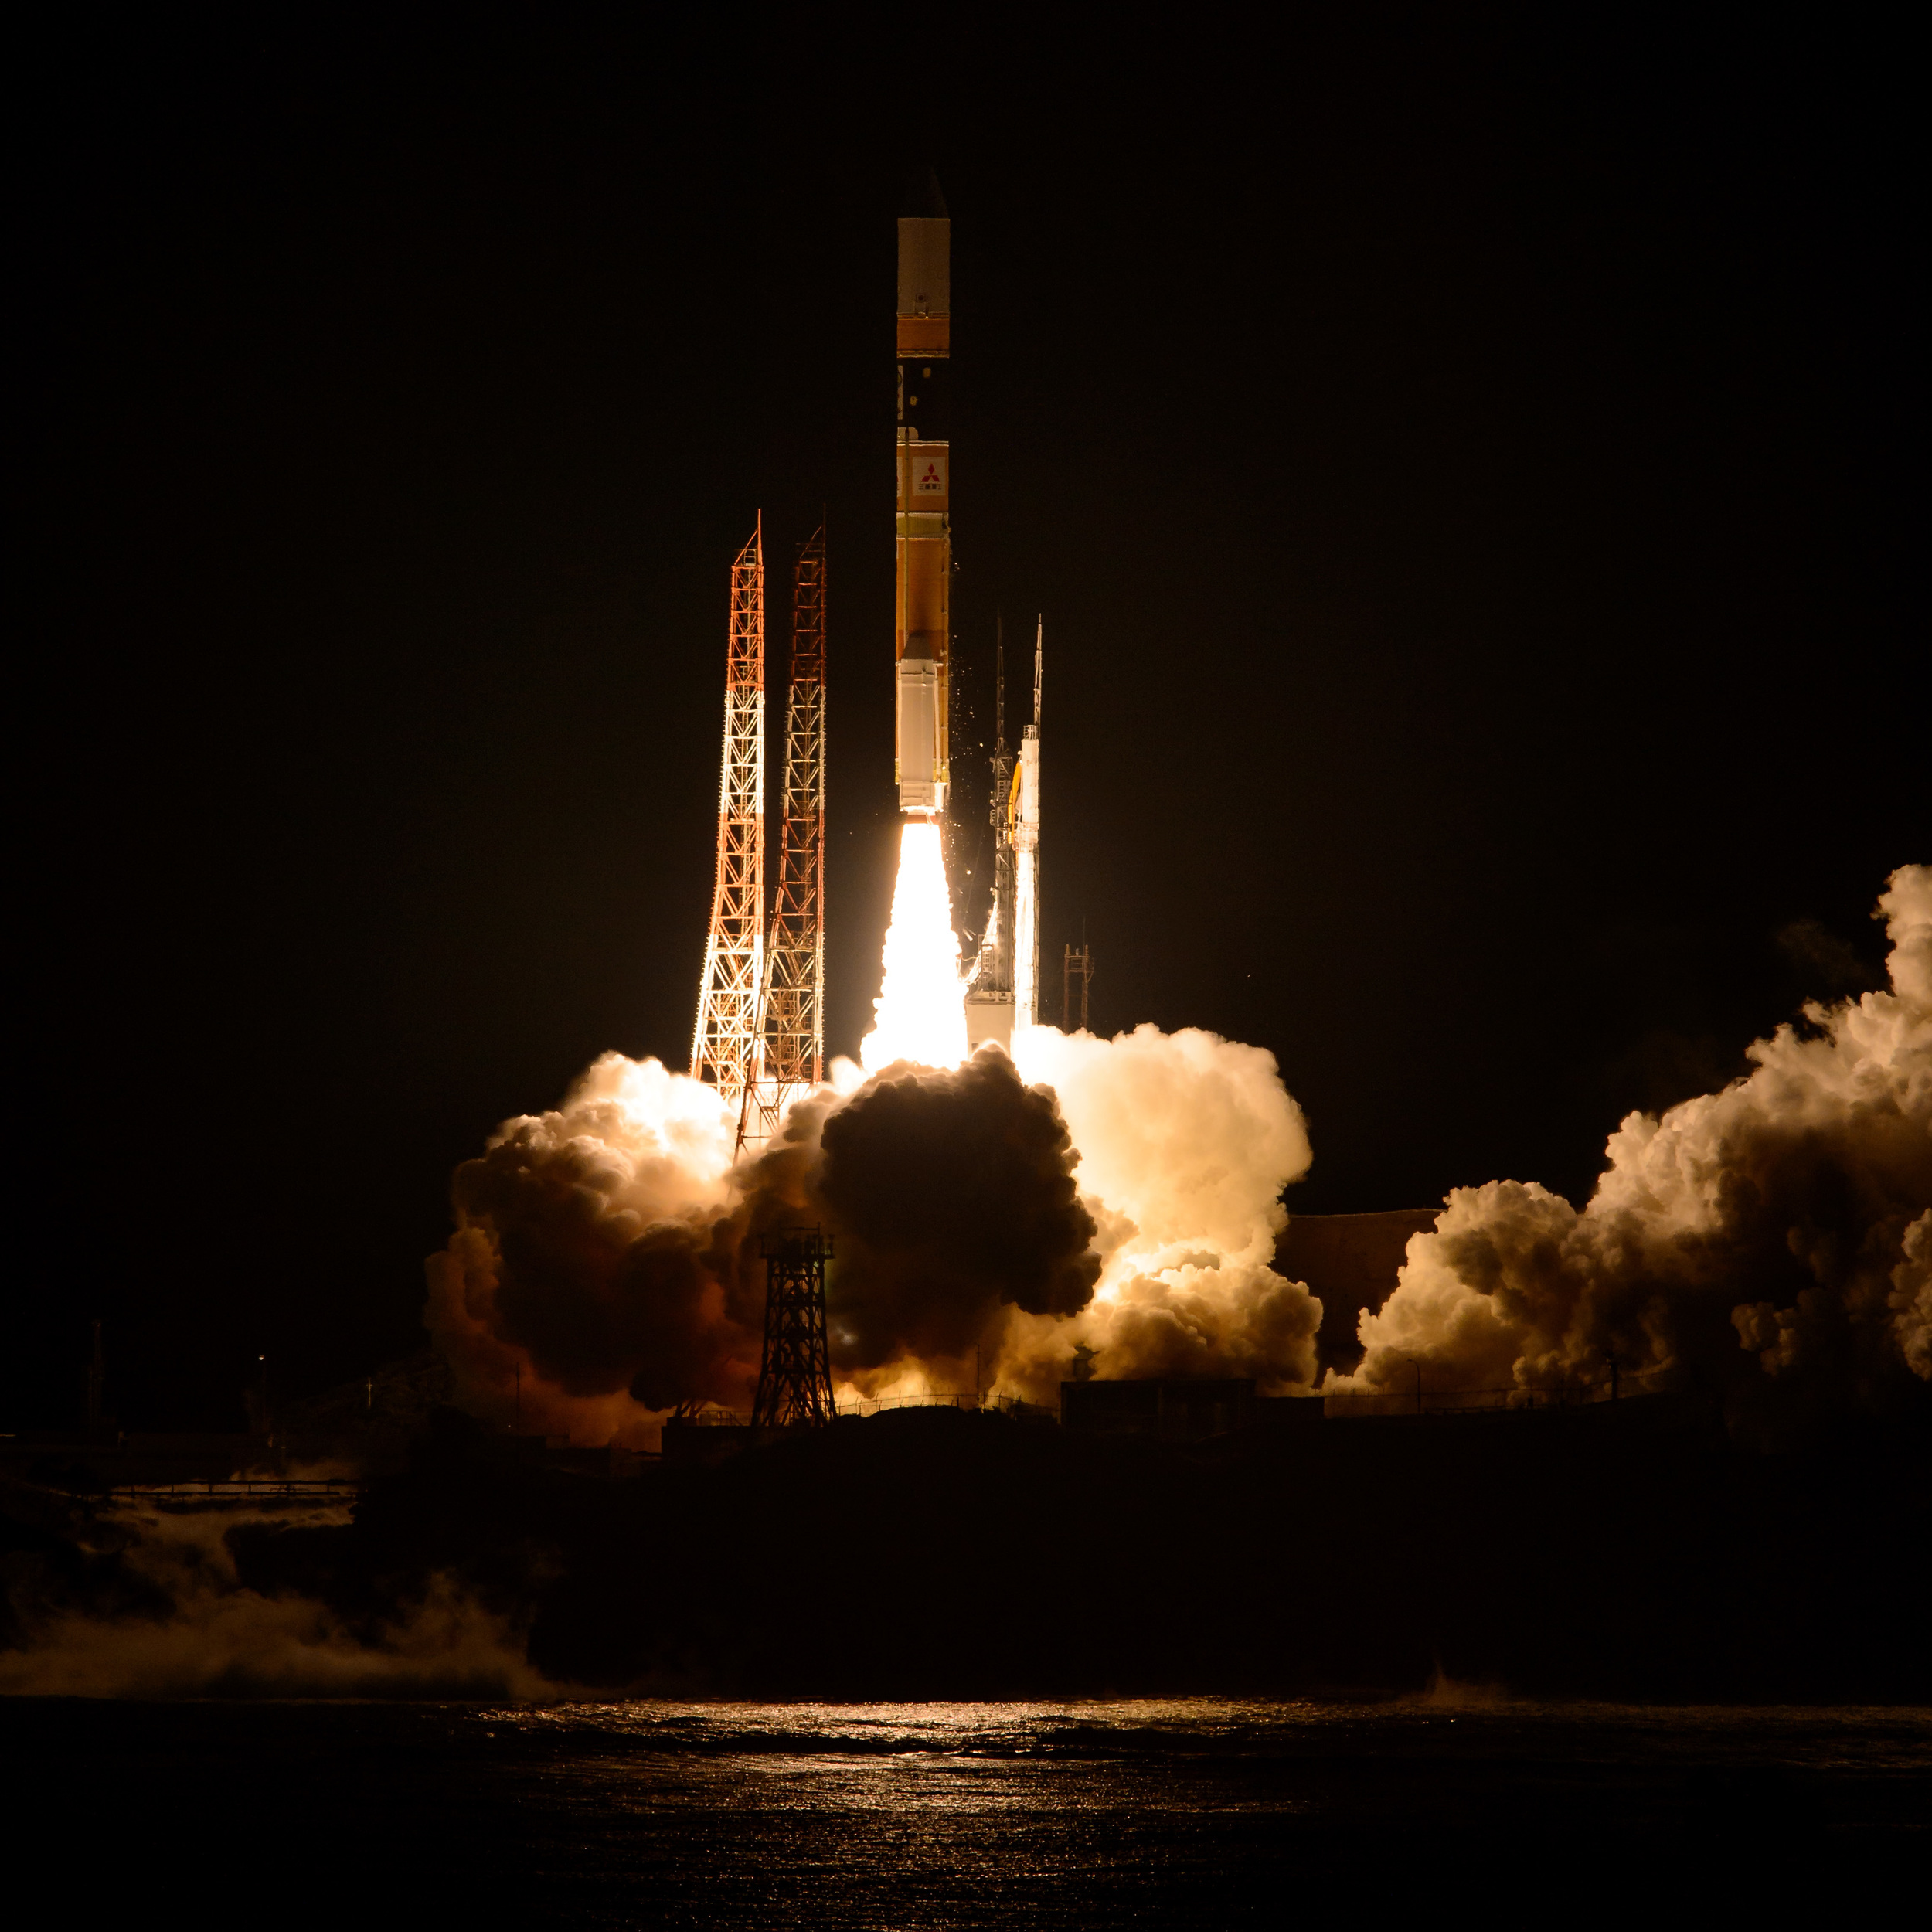 Liftoff of the Mitsubishi H2-A rocket carrying the GPM satellite into space from the Tanegashima Space Center in Japan.